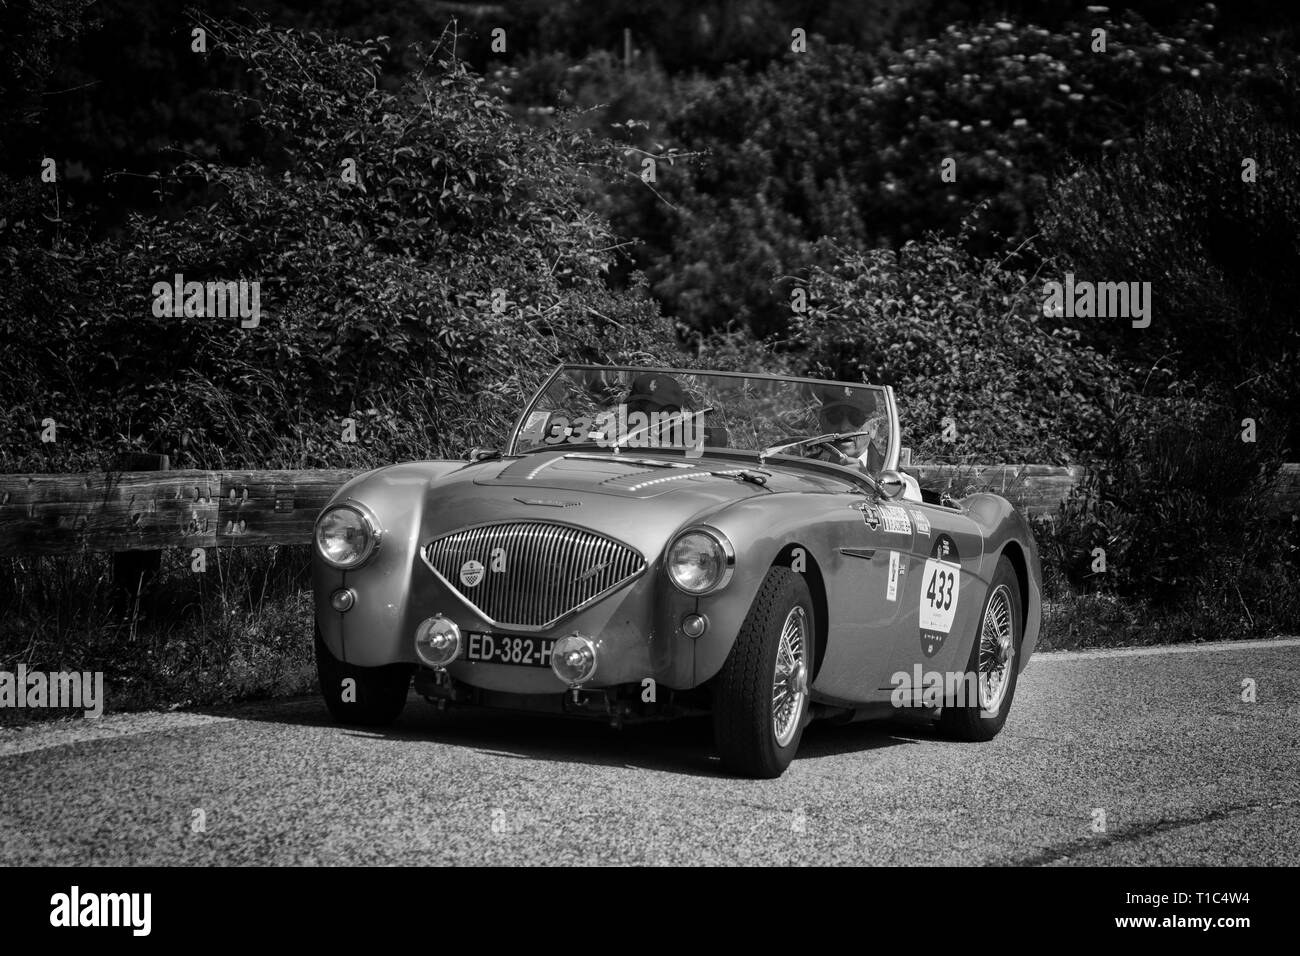 AUSTIN HEALEY 100/4 BN2 1956 on an old racing car in rally Mille Miglia 2018 the famous italian historical race (1927-1957) - Stock Image